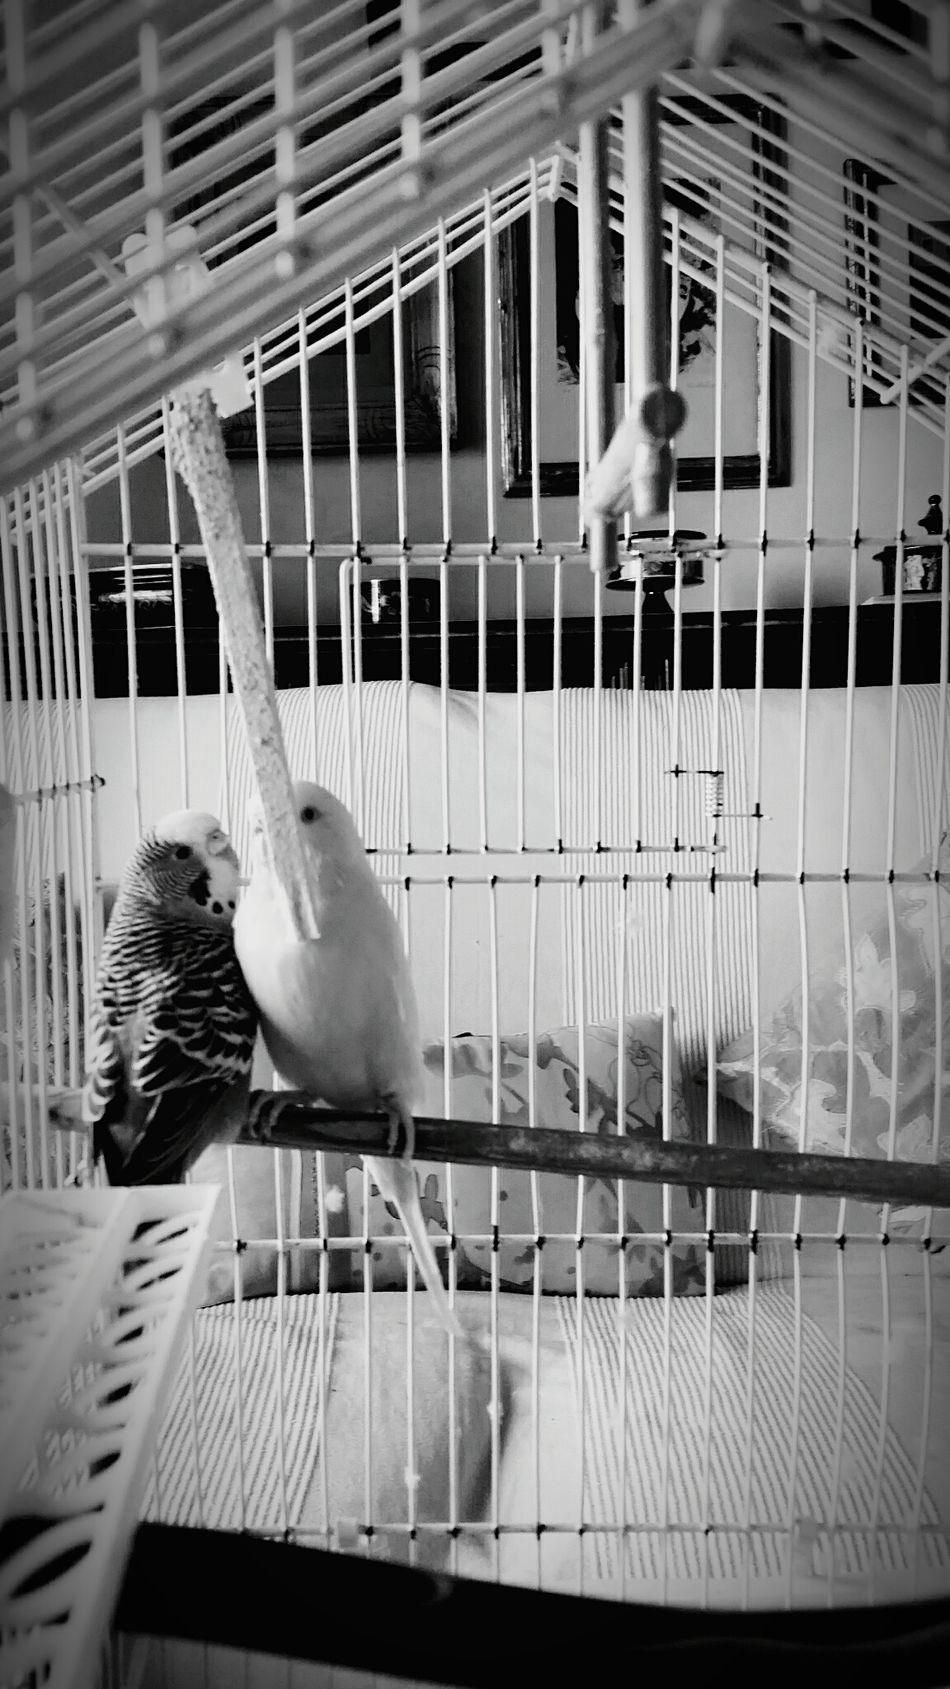 What do you see from the inside?Do You Buggy Bird Animal Themes Perching Cage Architecture Wildlife Built Structure Parrot Animals In Captivity Close-up Black And White Gabbia Pappagallini Retro Styled If I Wore Your Shoes The Bird's Eye View The Bird Always Looks Where He Can't Go Birdcage Blue Focus On Foreground Vibrant Color Beak No People Monochrome Photography